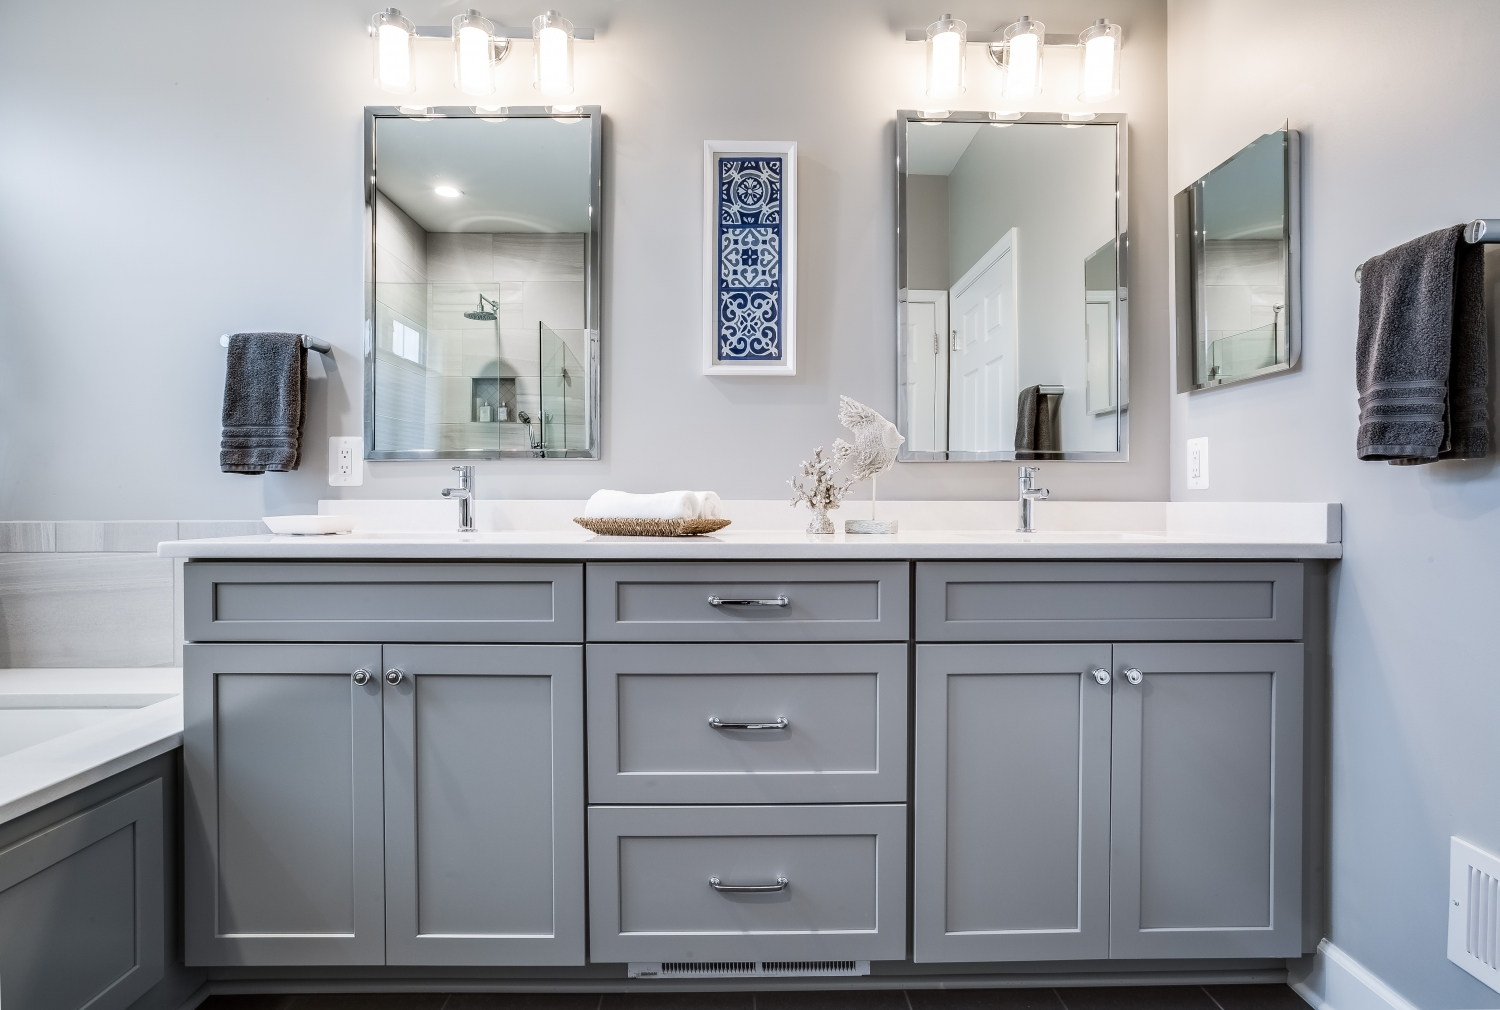 Choosing A Remodeling Contractor Foster Remodeling Company - Questions to ask a contractor for bathroom remodel